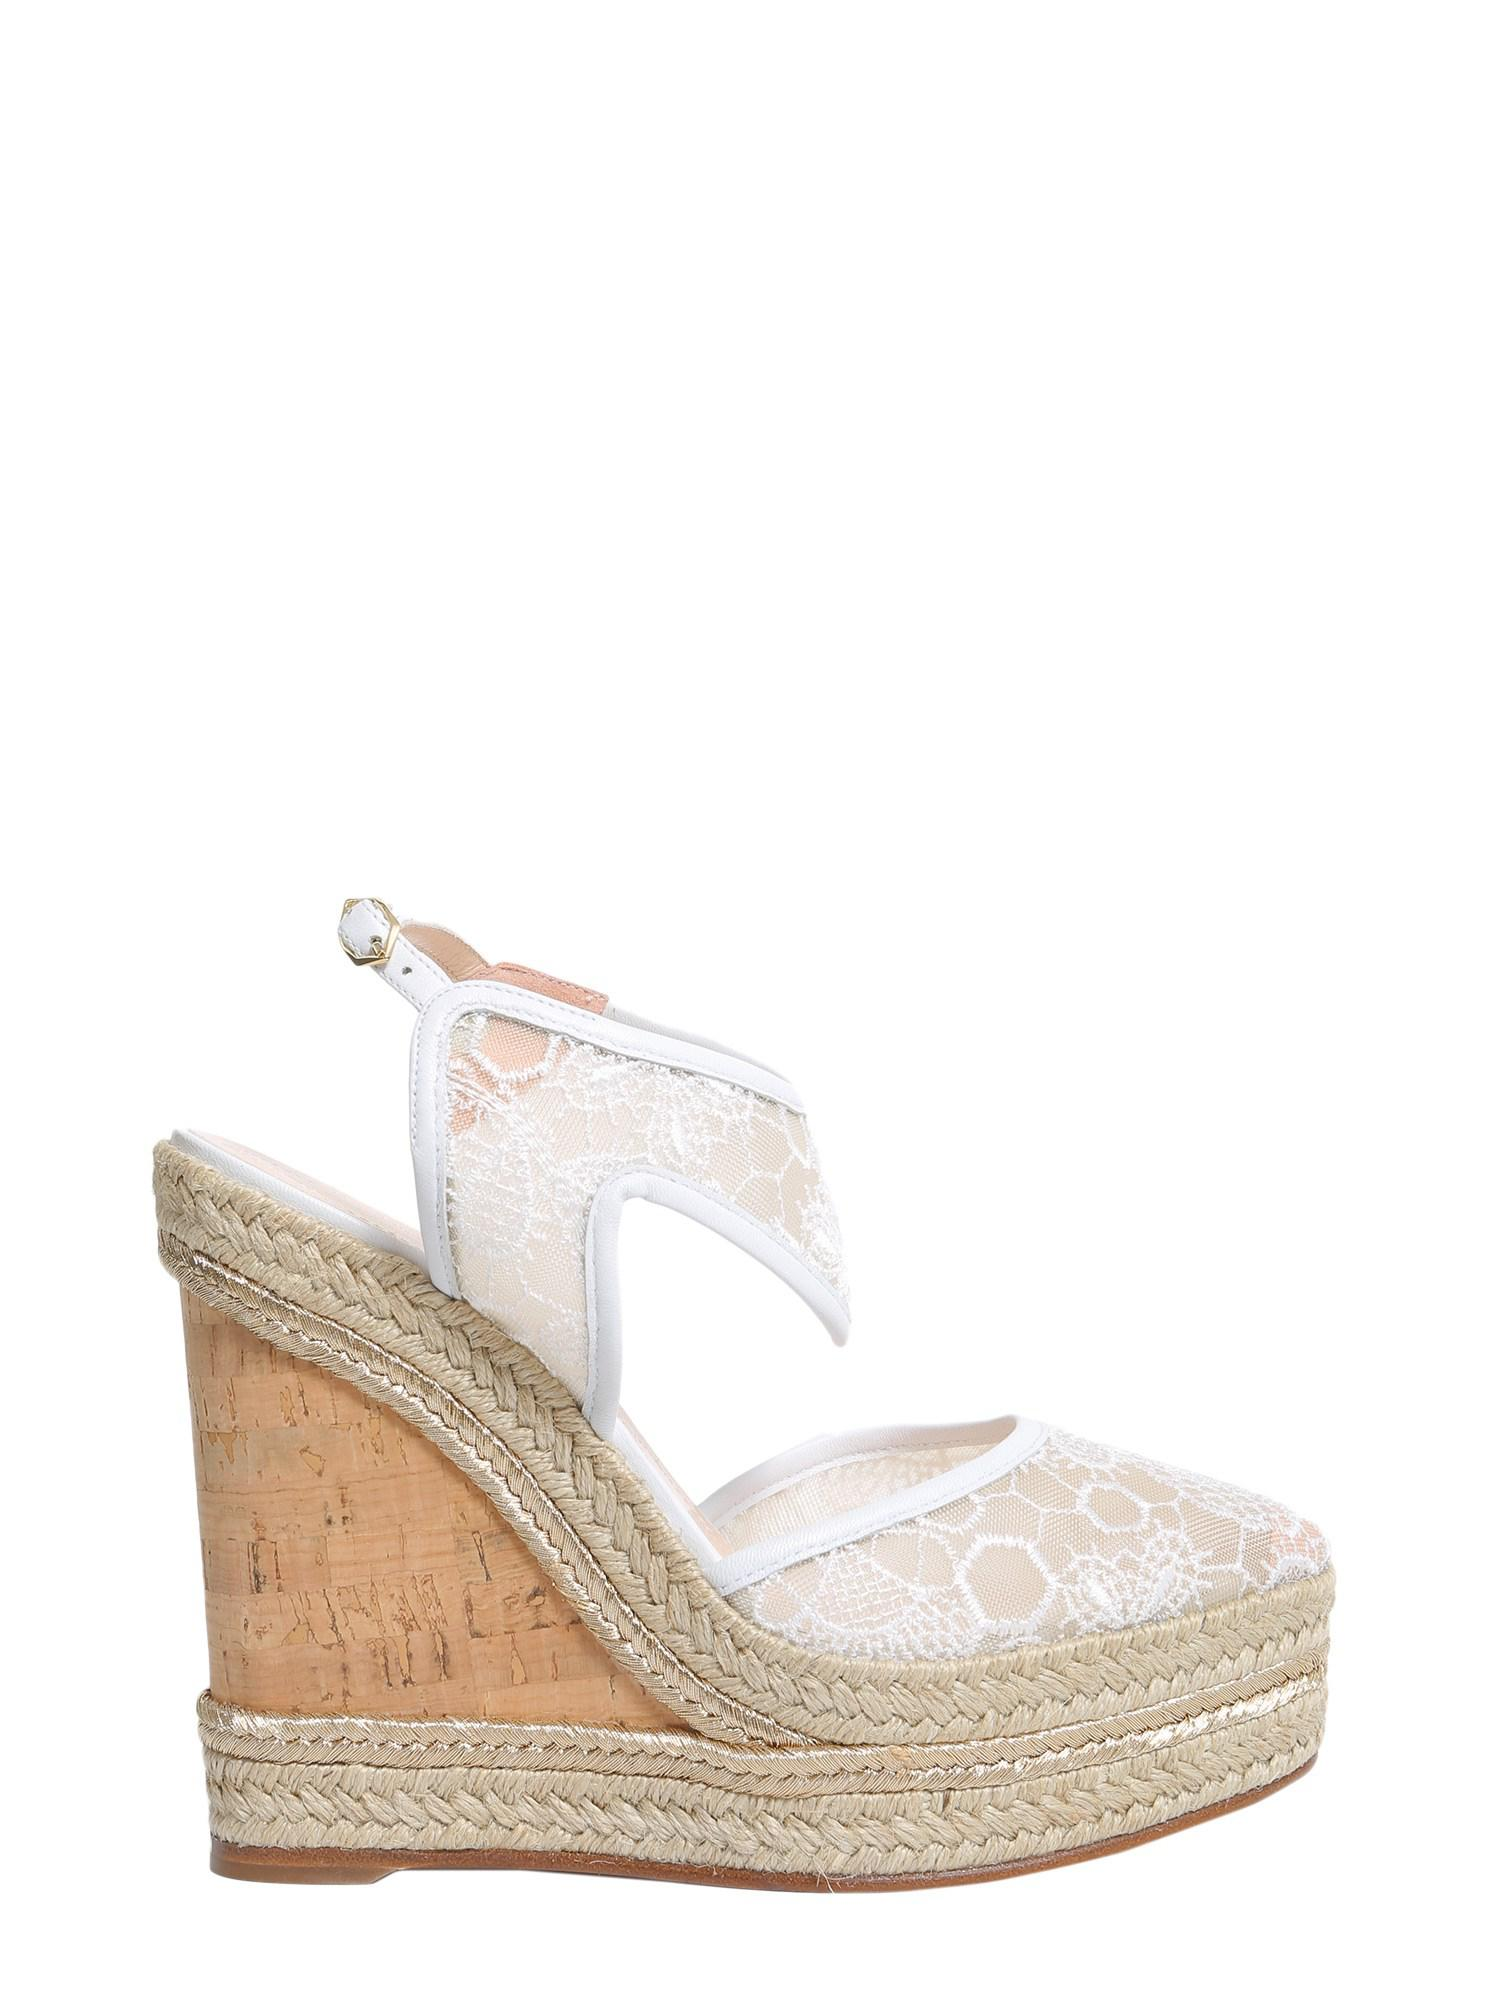 Nicholas Kirkwood Embellished Wedge Sandals free shipping nicekicks sale fast delivery shop online discount clearance buy cheap best place nl58kQ